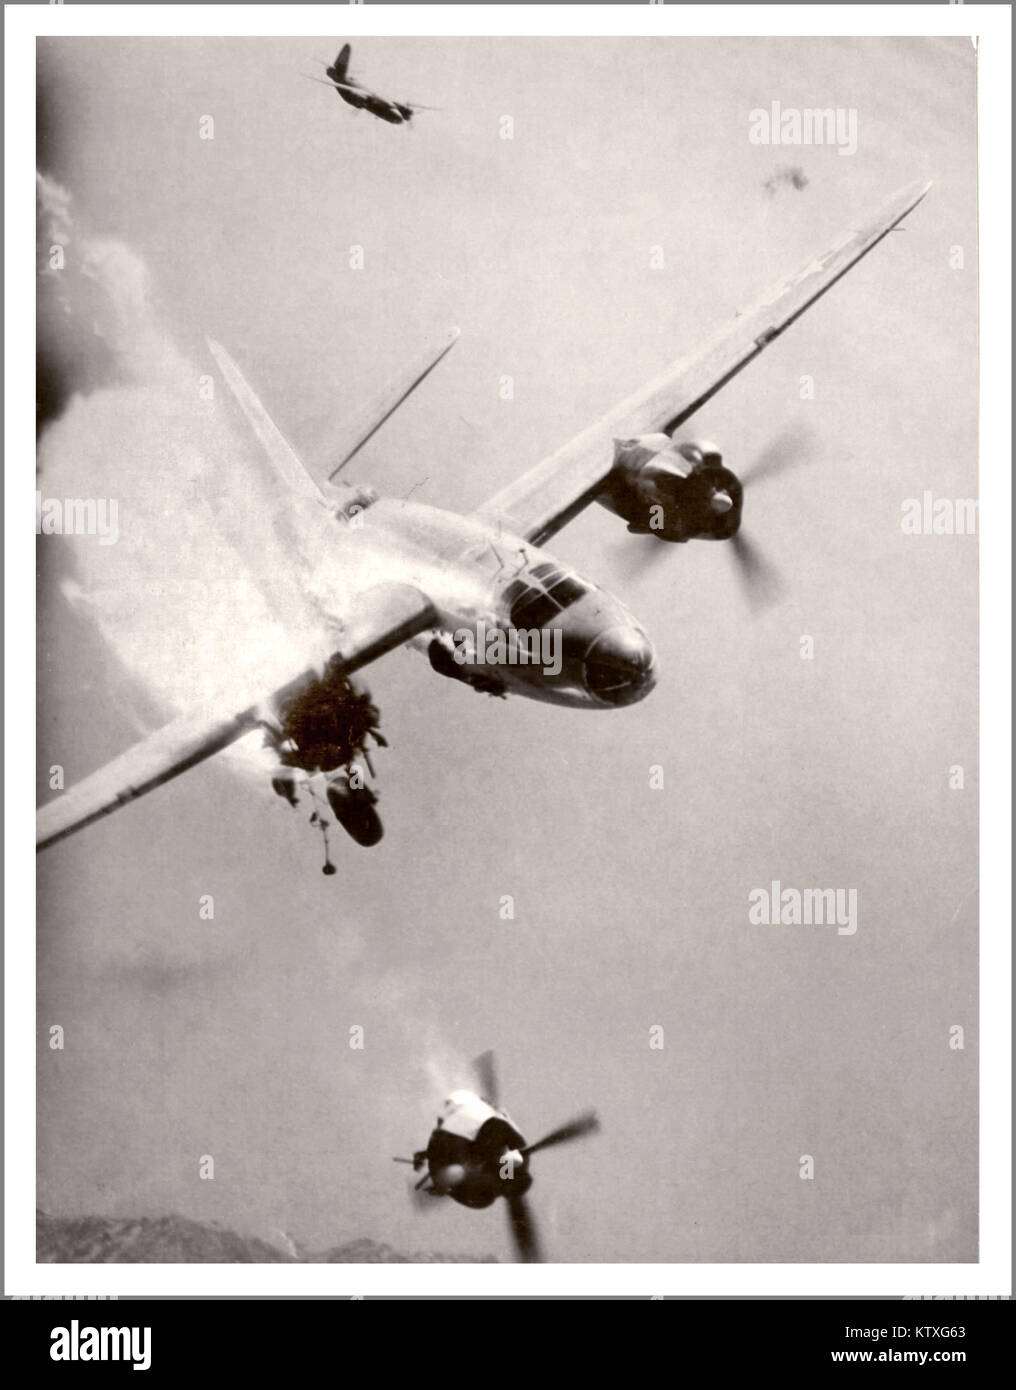 American Airforce USAAF B26 Bomber over France. Grim reality war image of a crippled American B-26 Marauder aircraft - Stock Image